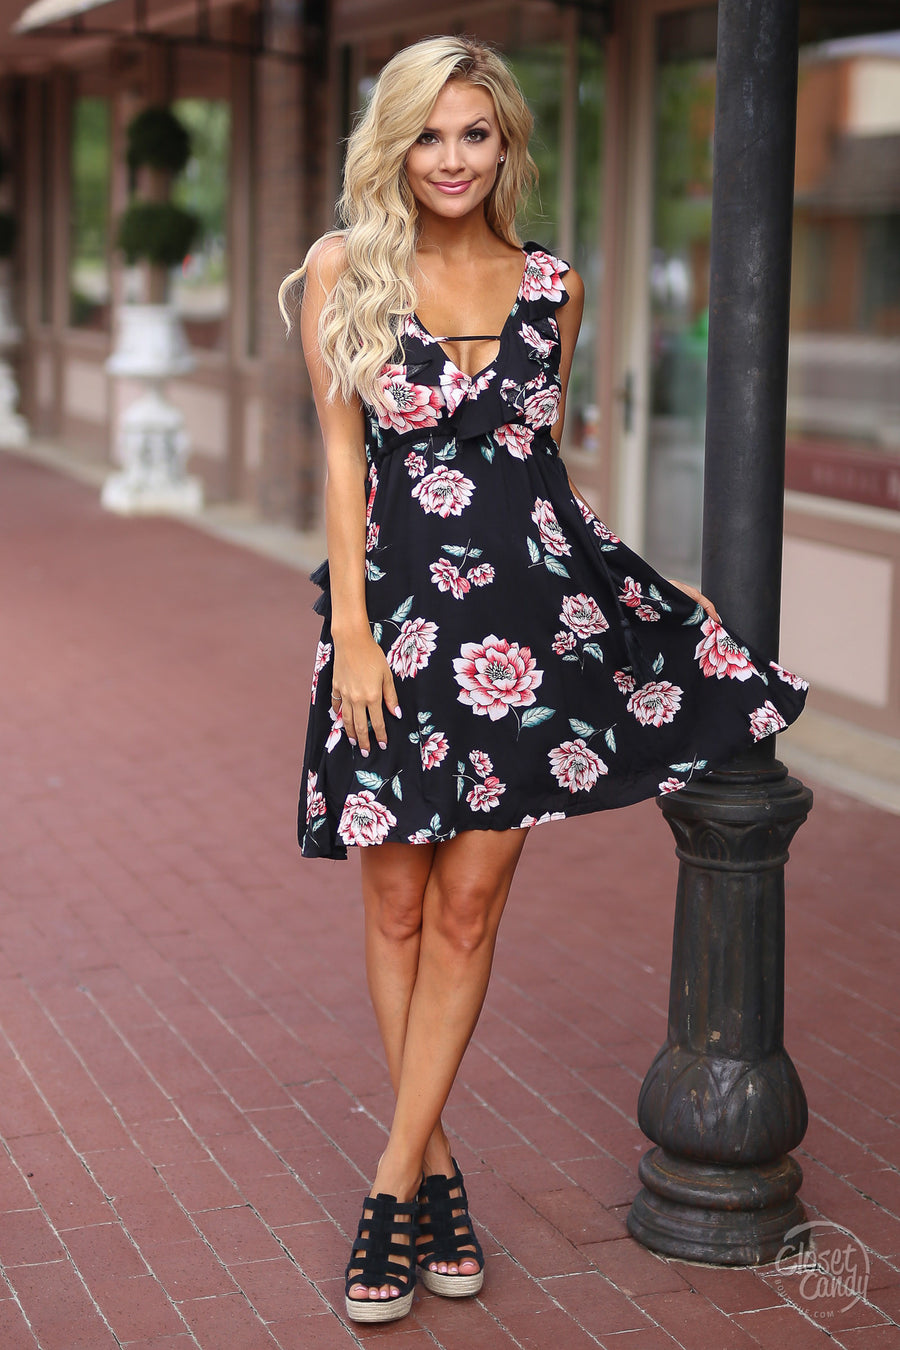 Summer Bucket List Dress - black floral short dress for spring and summer, Closet Candy Boutique